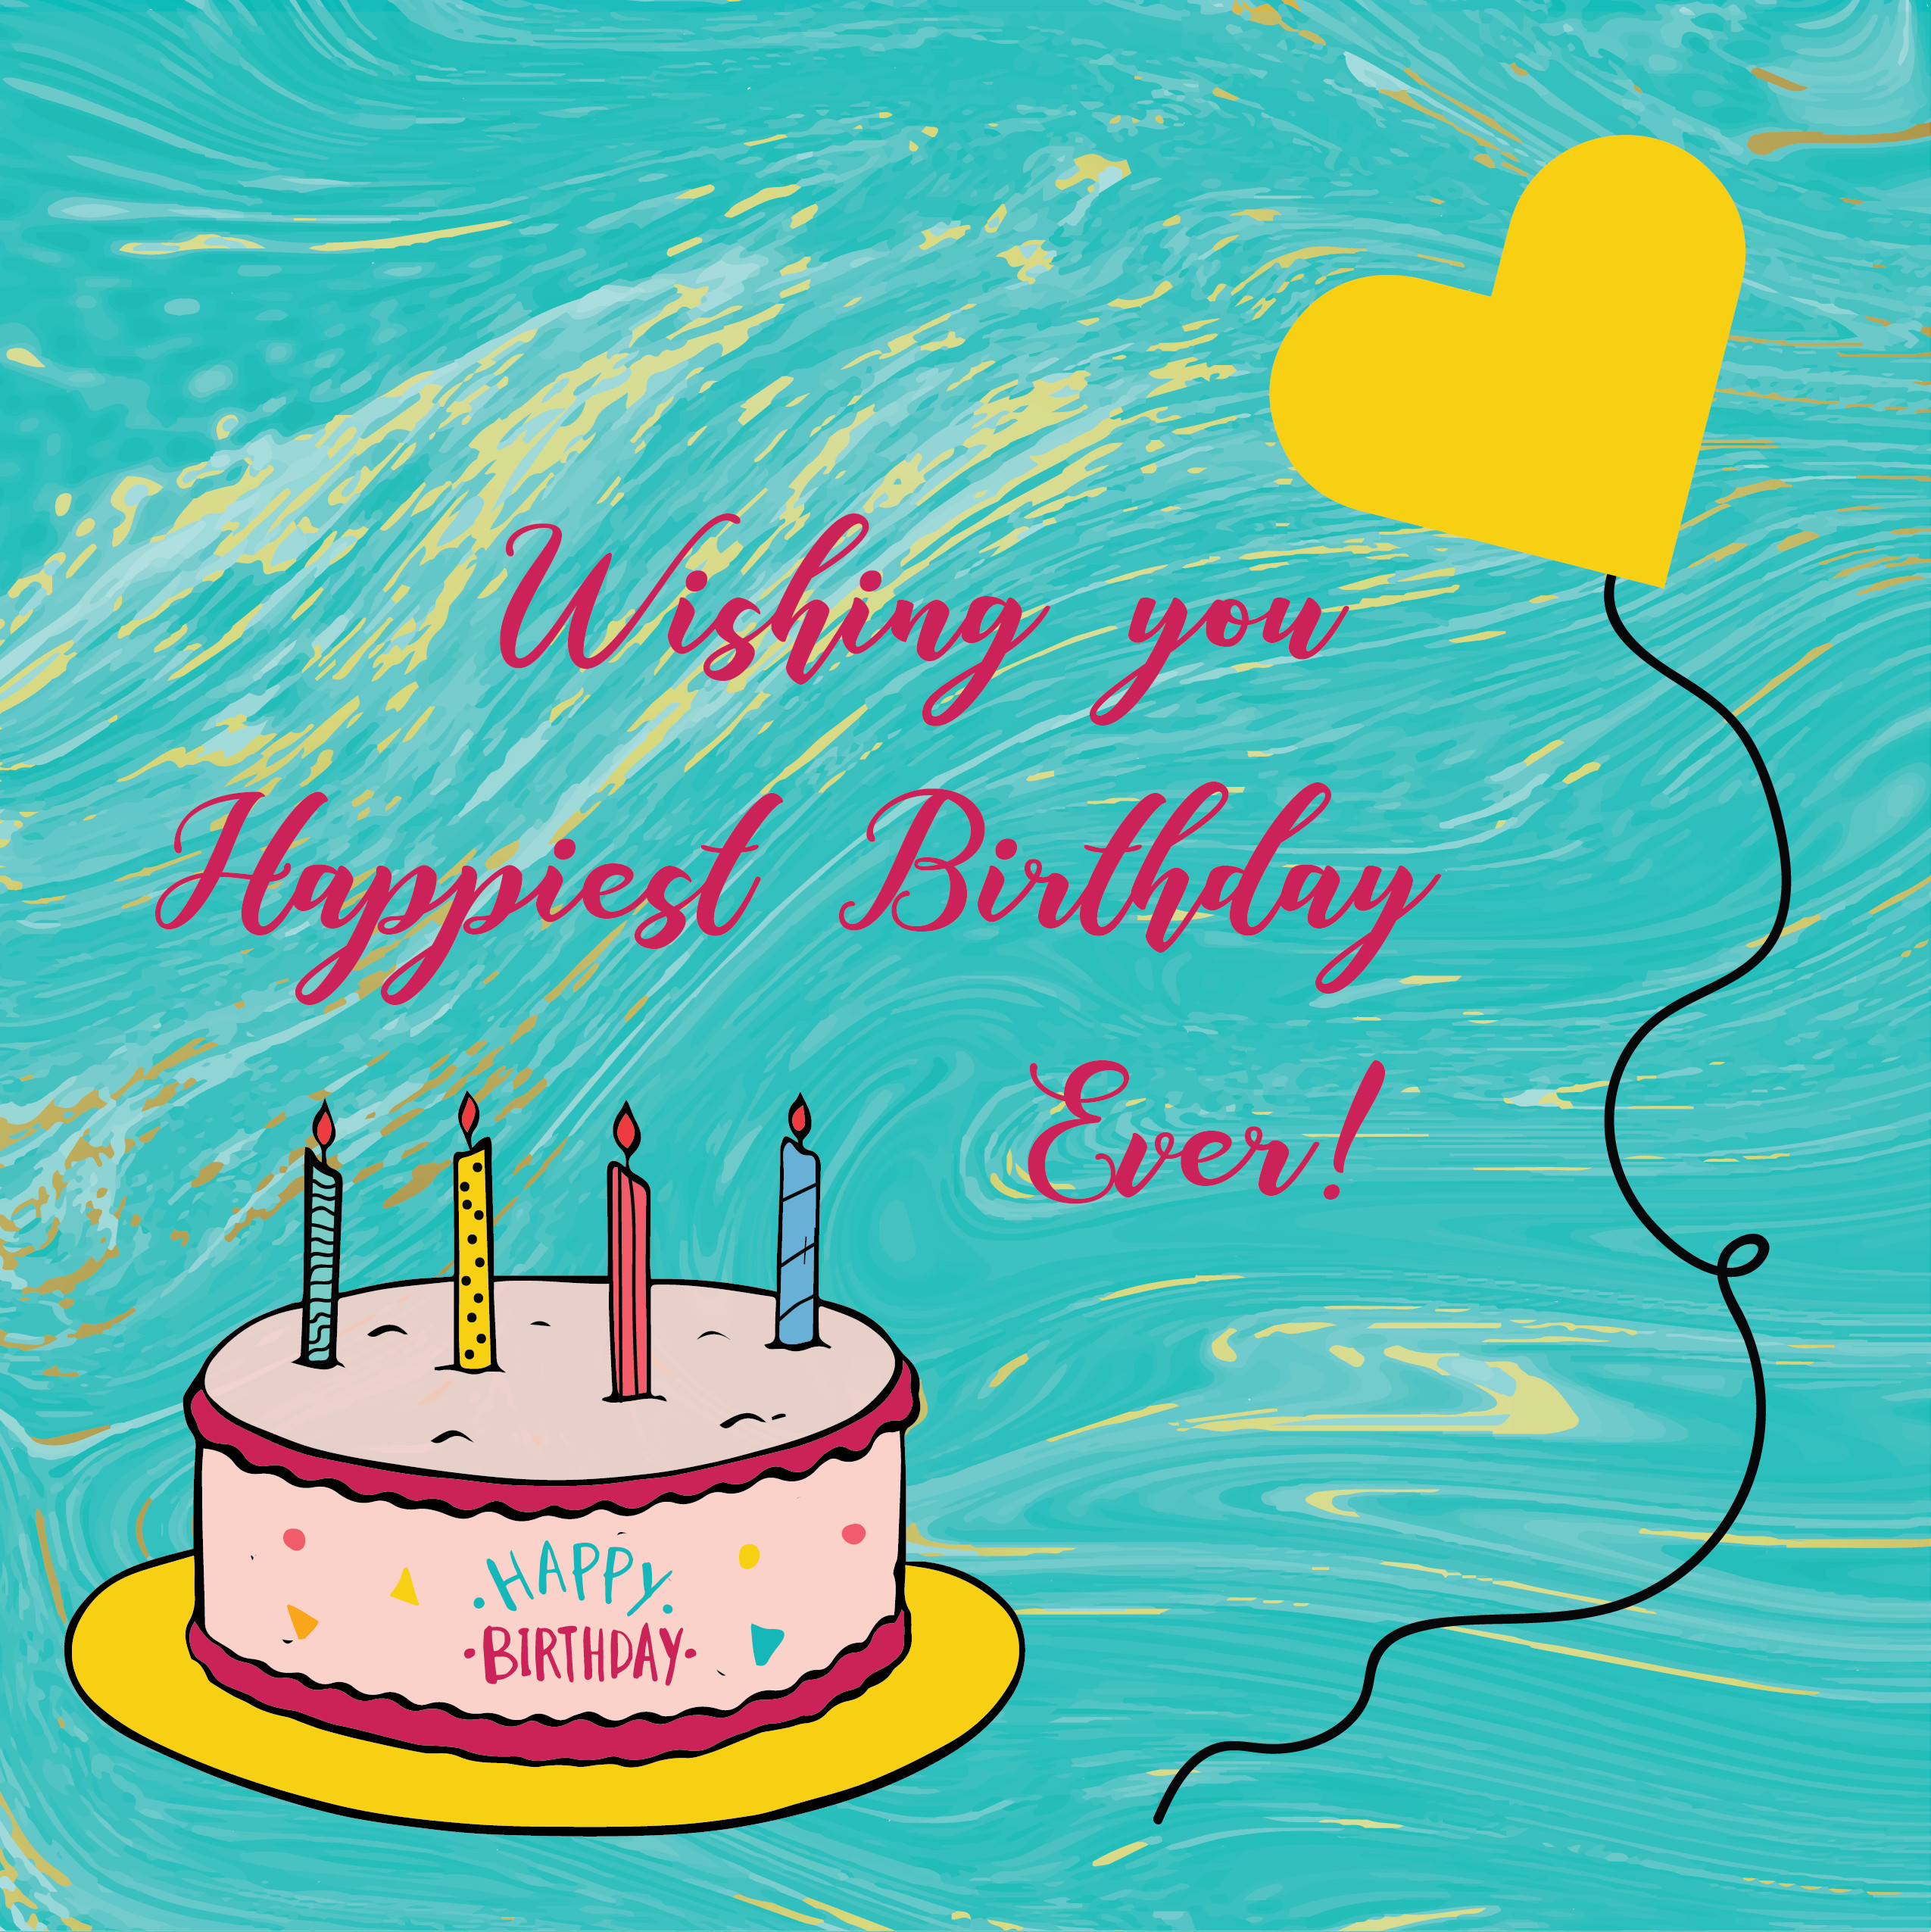 Best ideas about Happy Birthday Wishes Images . Save or Pin 200 Happy Birthday Wishes & Quotes with Funny & Cute Now.